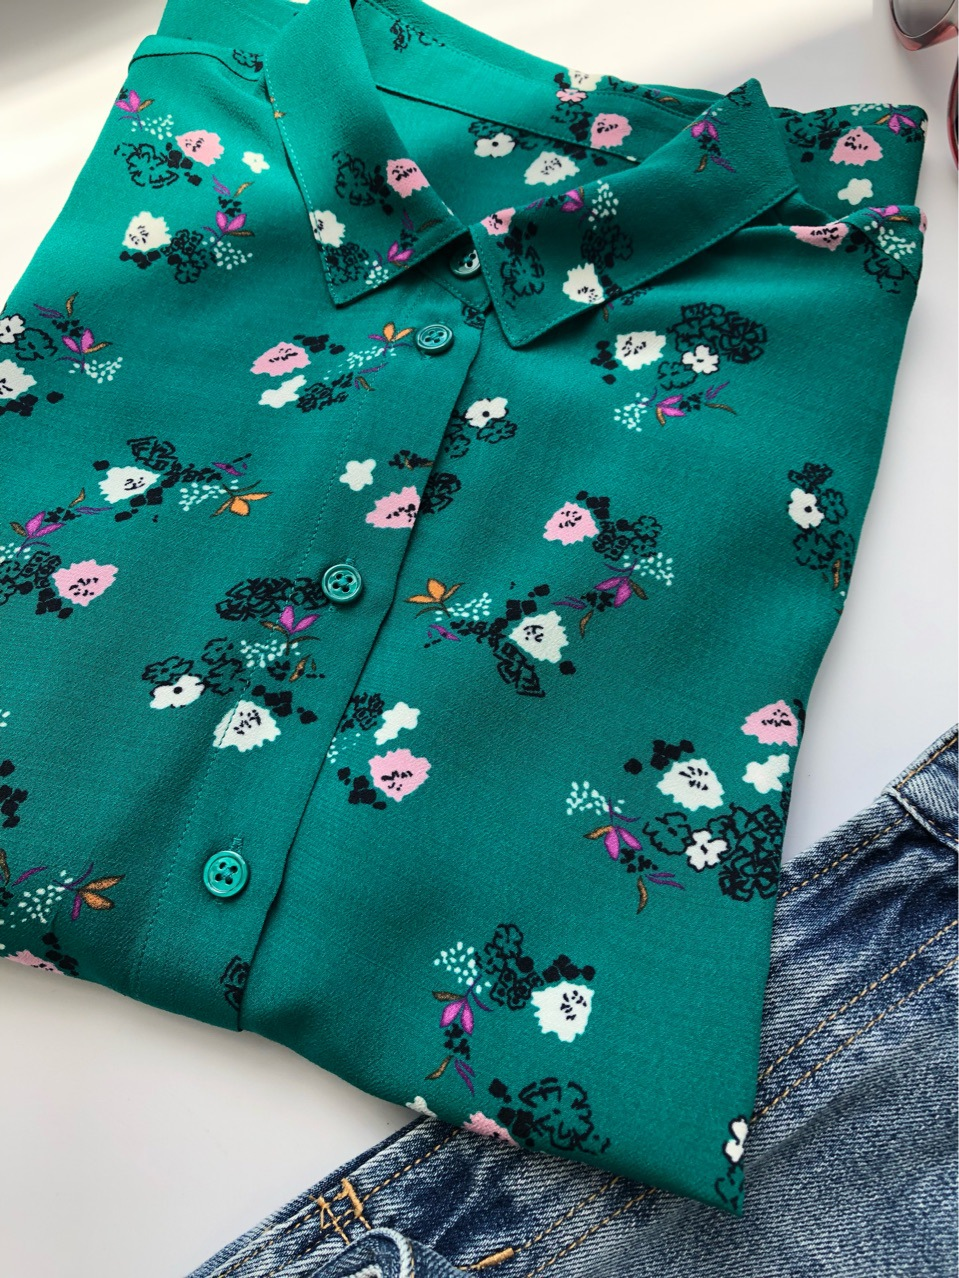 100% Viscose Autumn Shirt Women Green Forest Floral Print Three Quarter Sleeve ladies Blouses and tops Casual with buttons